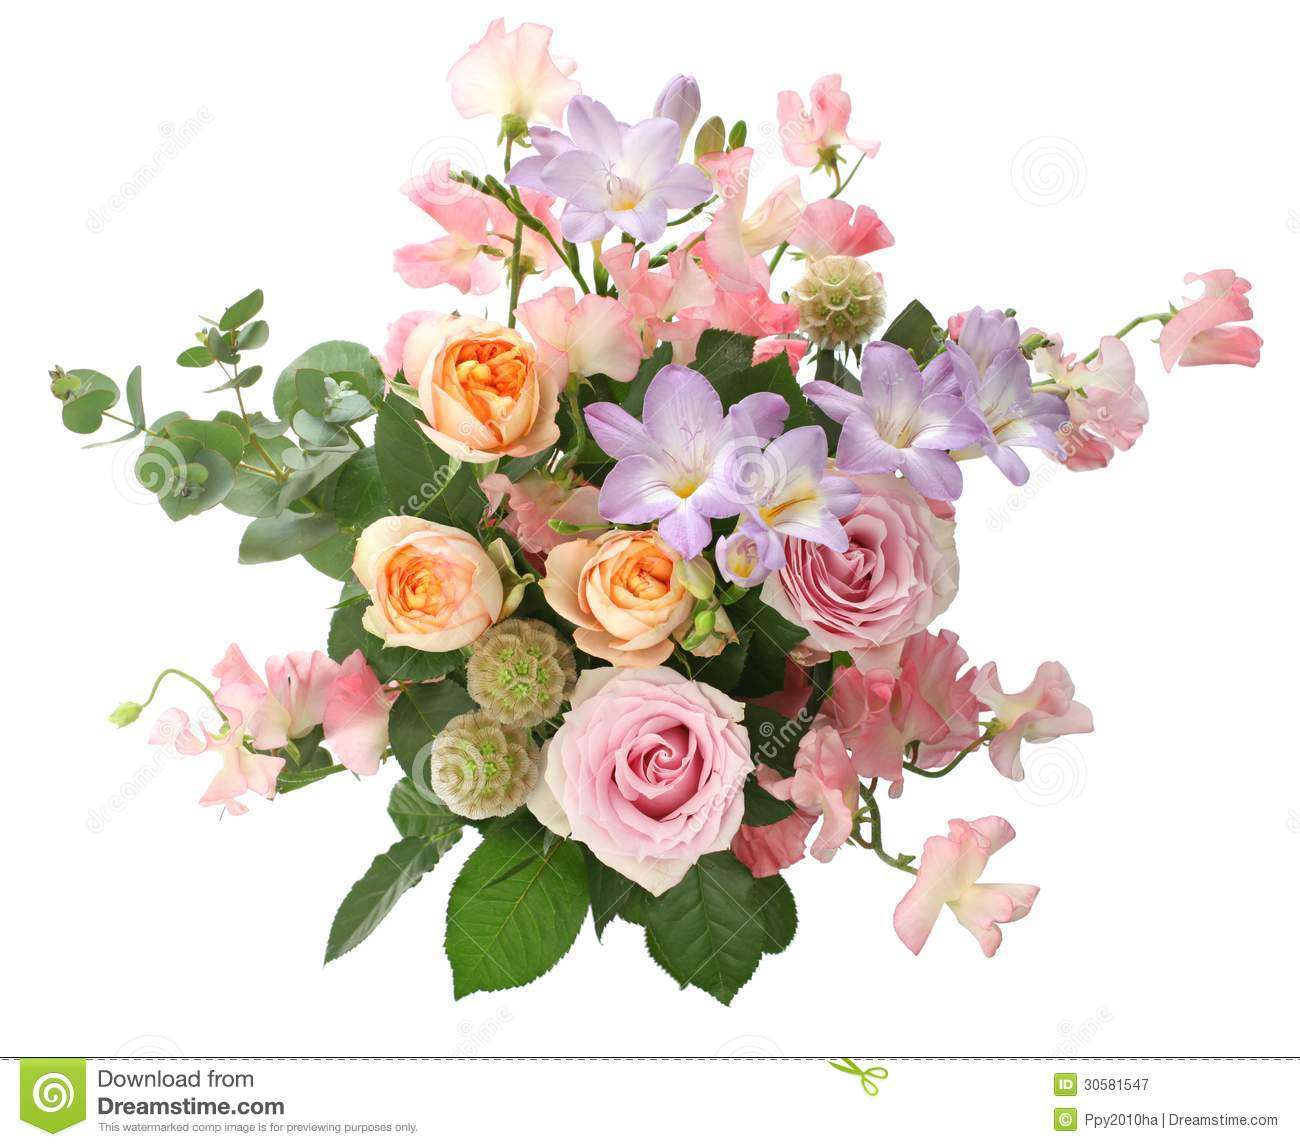 Bunch flowers images free vector free A Bunch Of Flowers Royalty Free Stock Photography - Image: 30581547 vector free